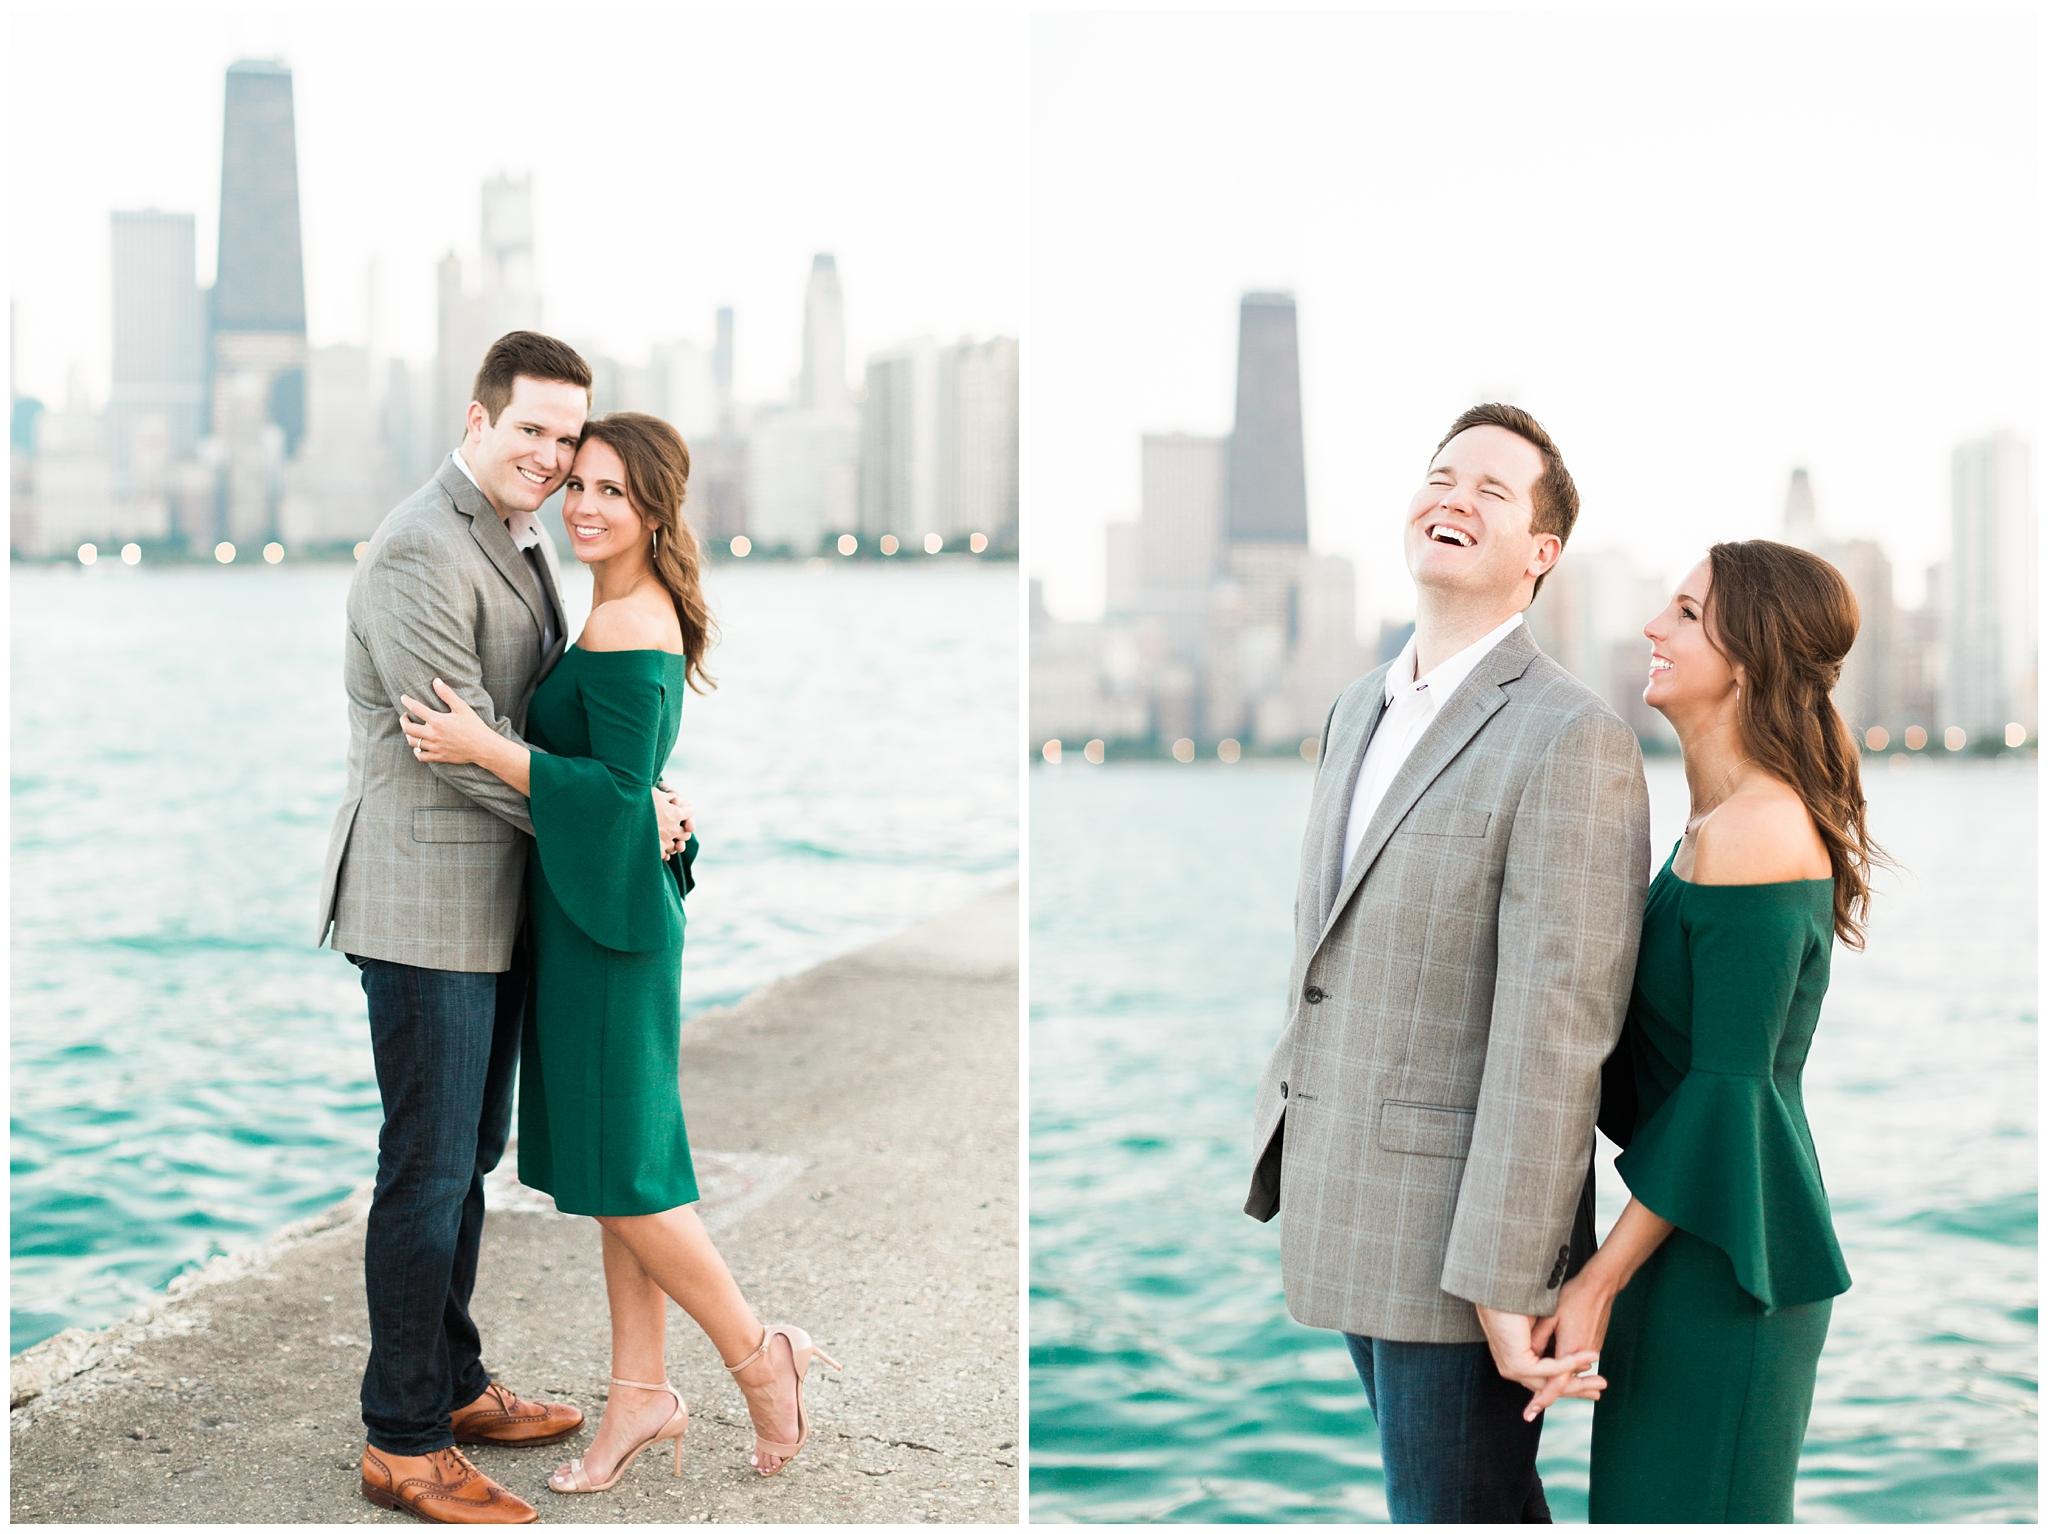 chicagoengagementsession_northavebeachengagementsession_northavebeach_northavenuebeach_northavenuebeachengagementsession_chicagoriverwalk_chicagoriverwalkengagementsession_0014.jpg